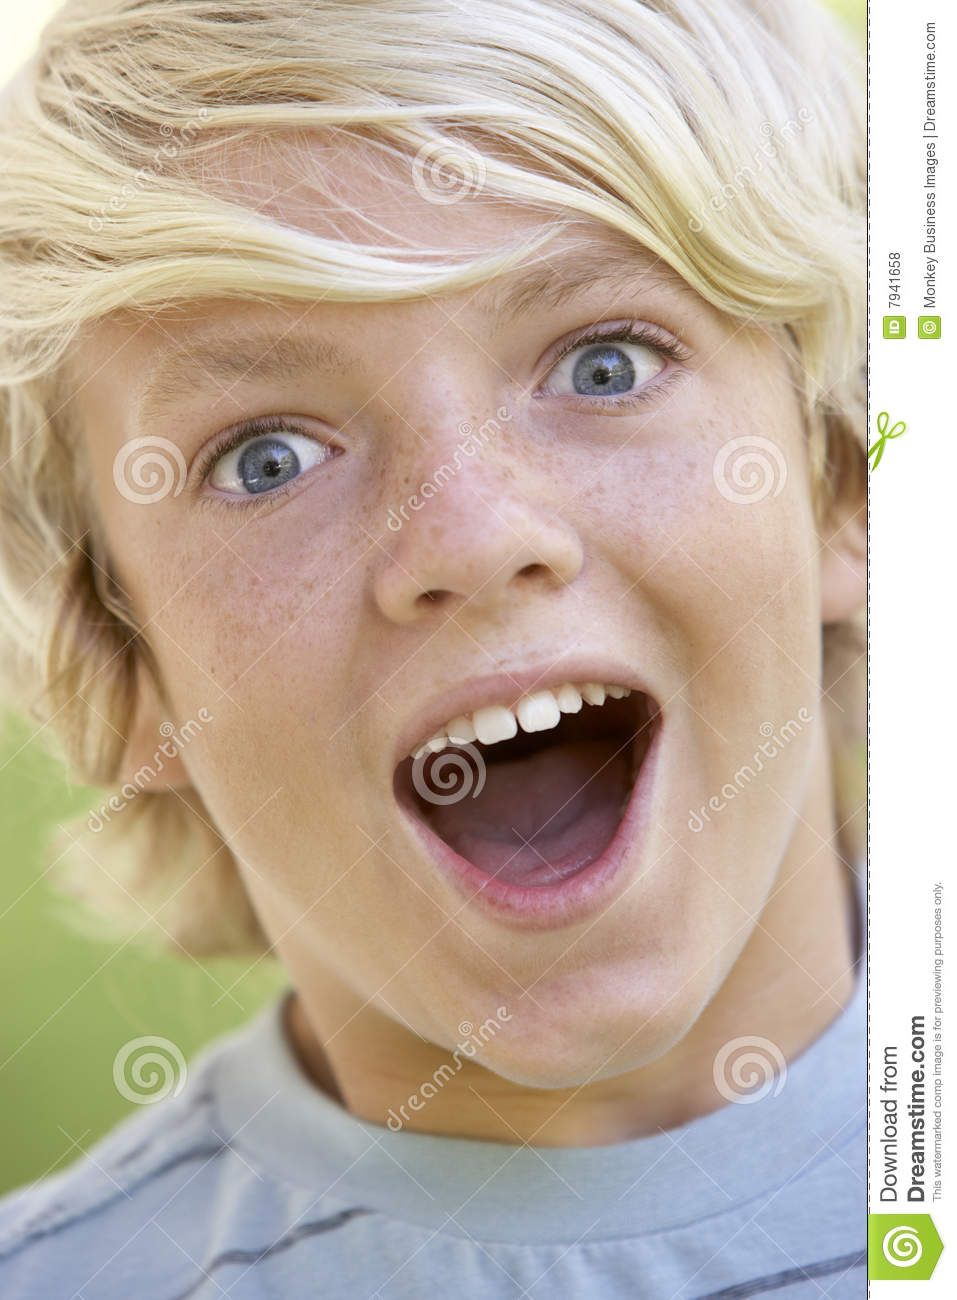 Teenage Boy Looking Excited Royalty Free Stock Photos ...